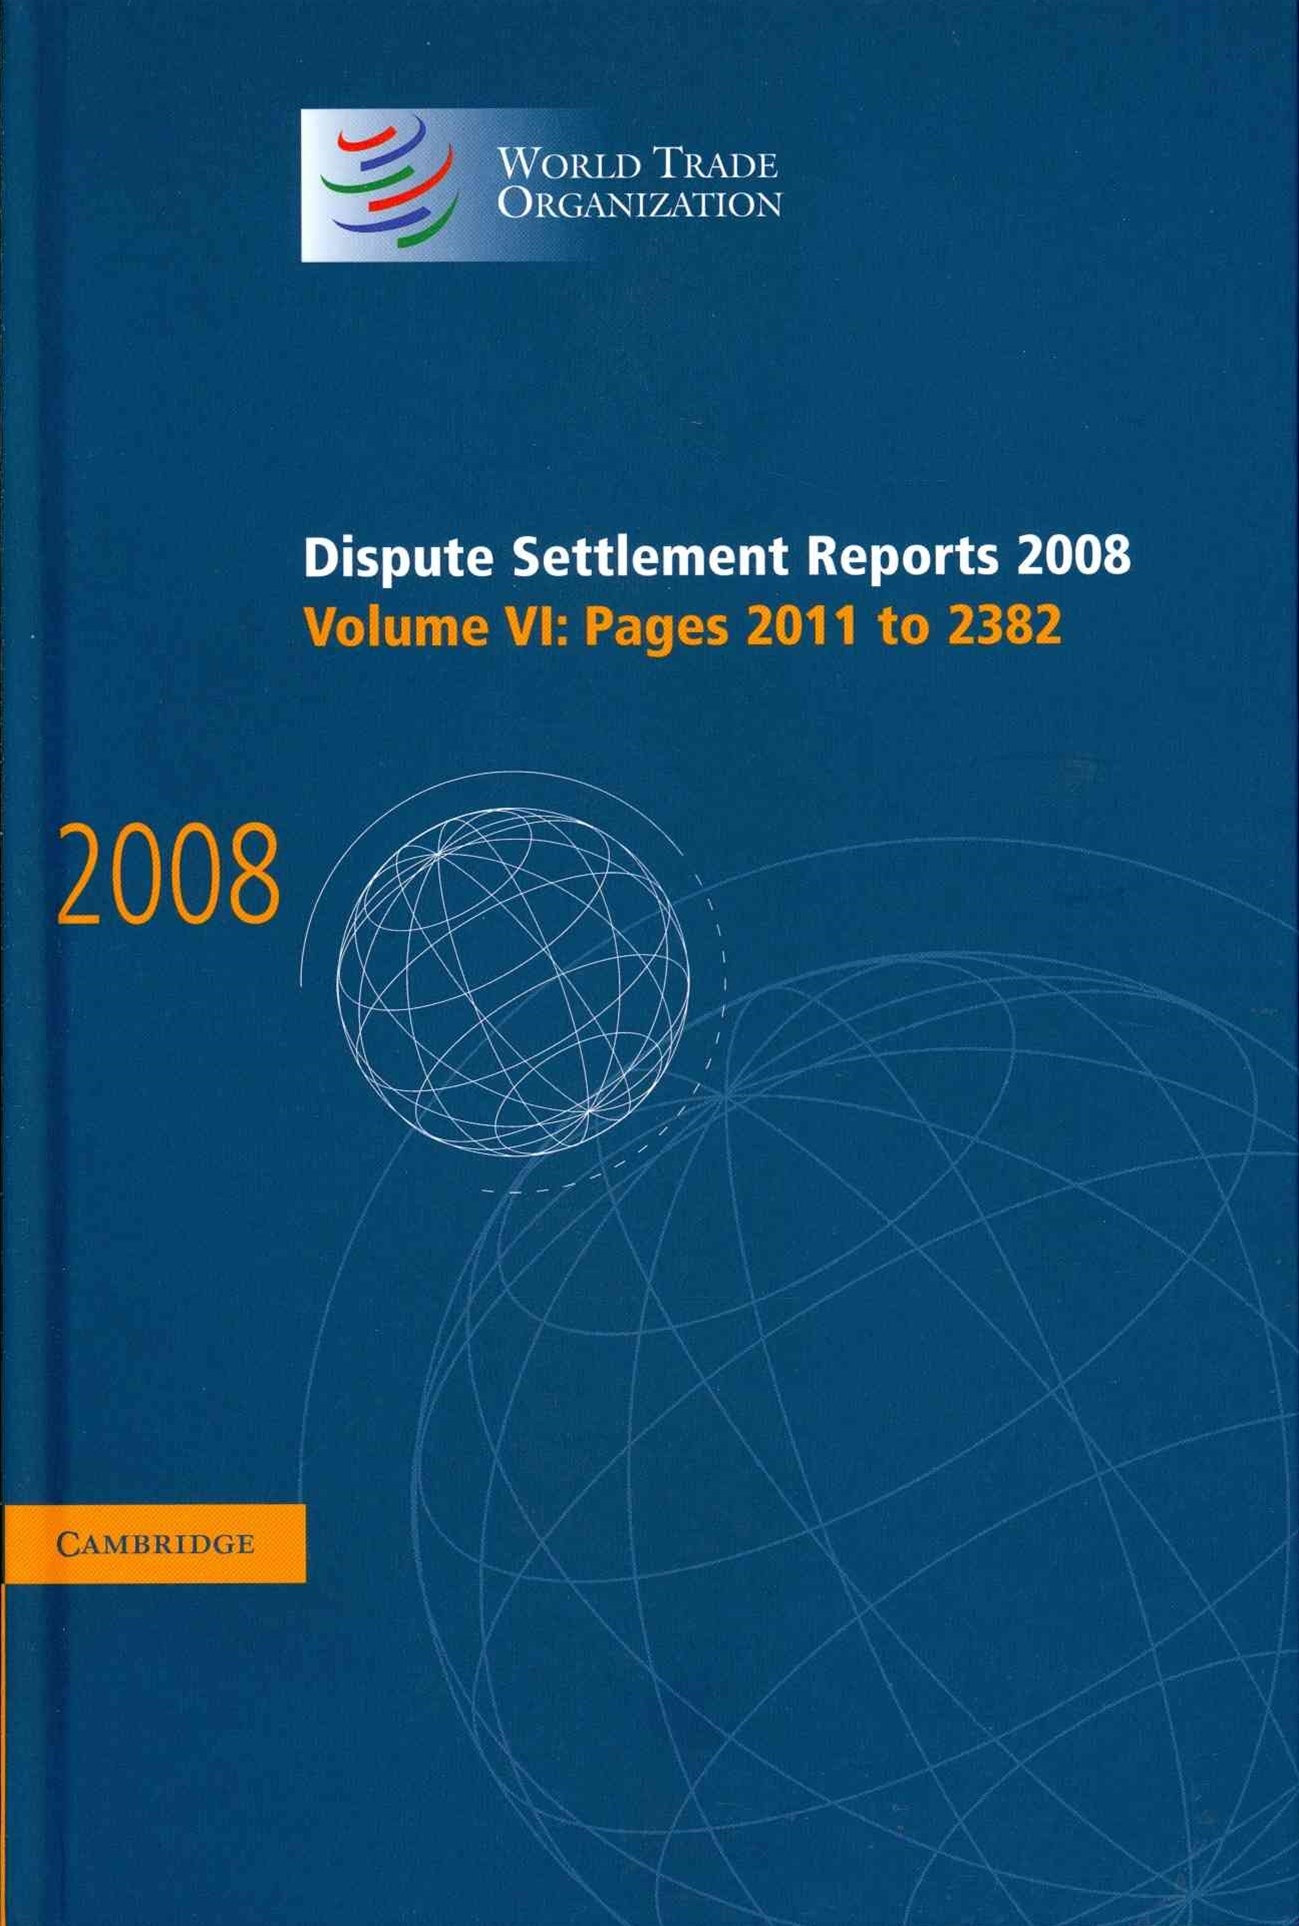 Dispute Settlement Reports 2008: Volume 6, Pages 2011-2382